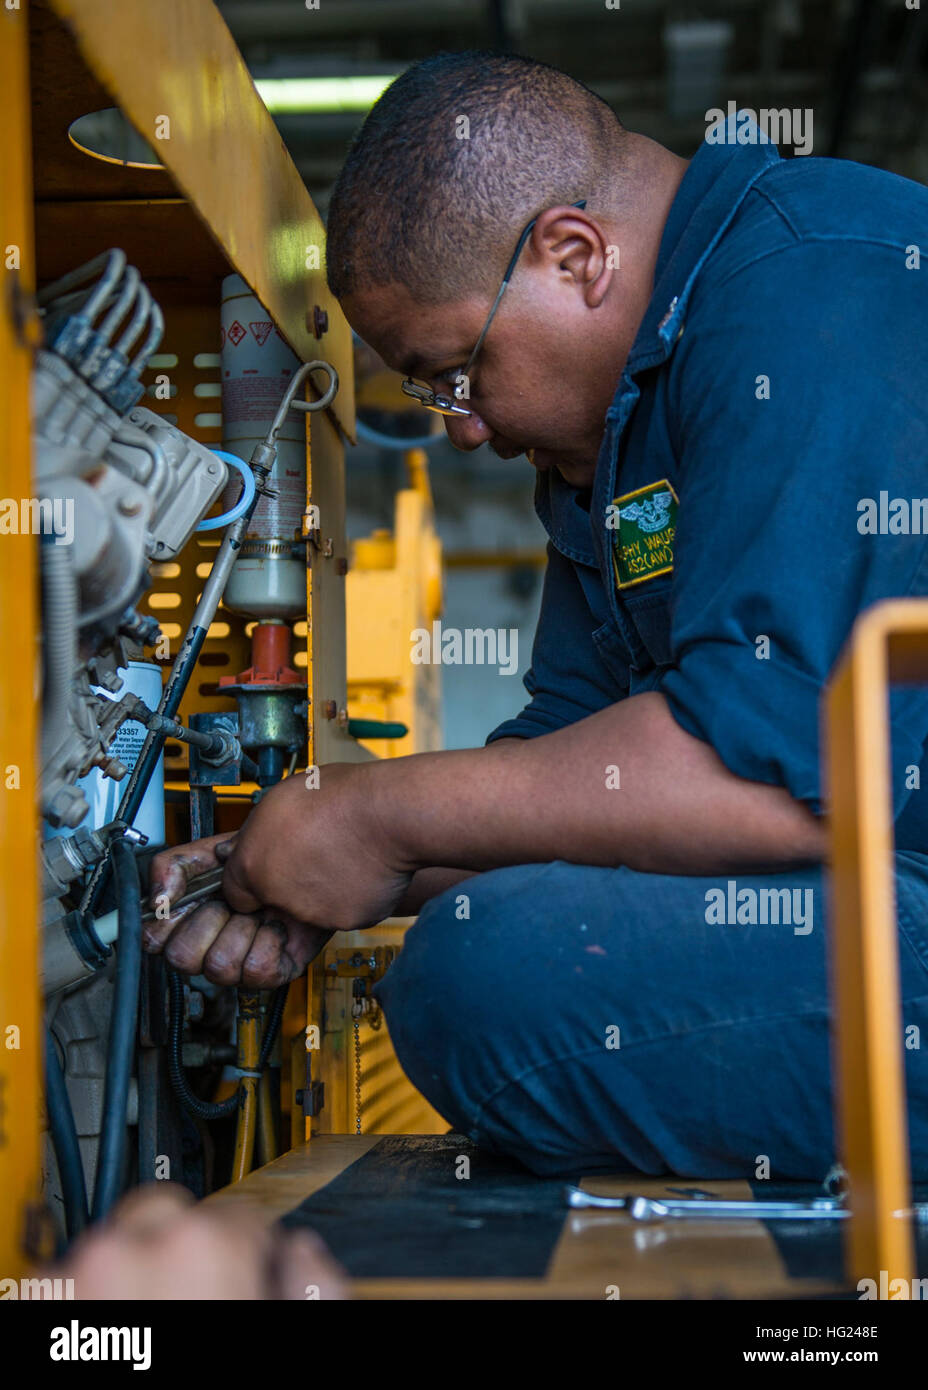 150205-N-EI510-006 PACIFIC OCEAN (Feb. 5, 2015) Aviation Support Equipment Technician 2nd Class Ralphy Waugh performs - Stock Image